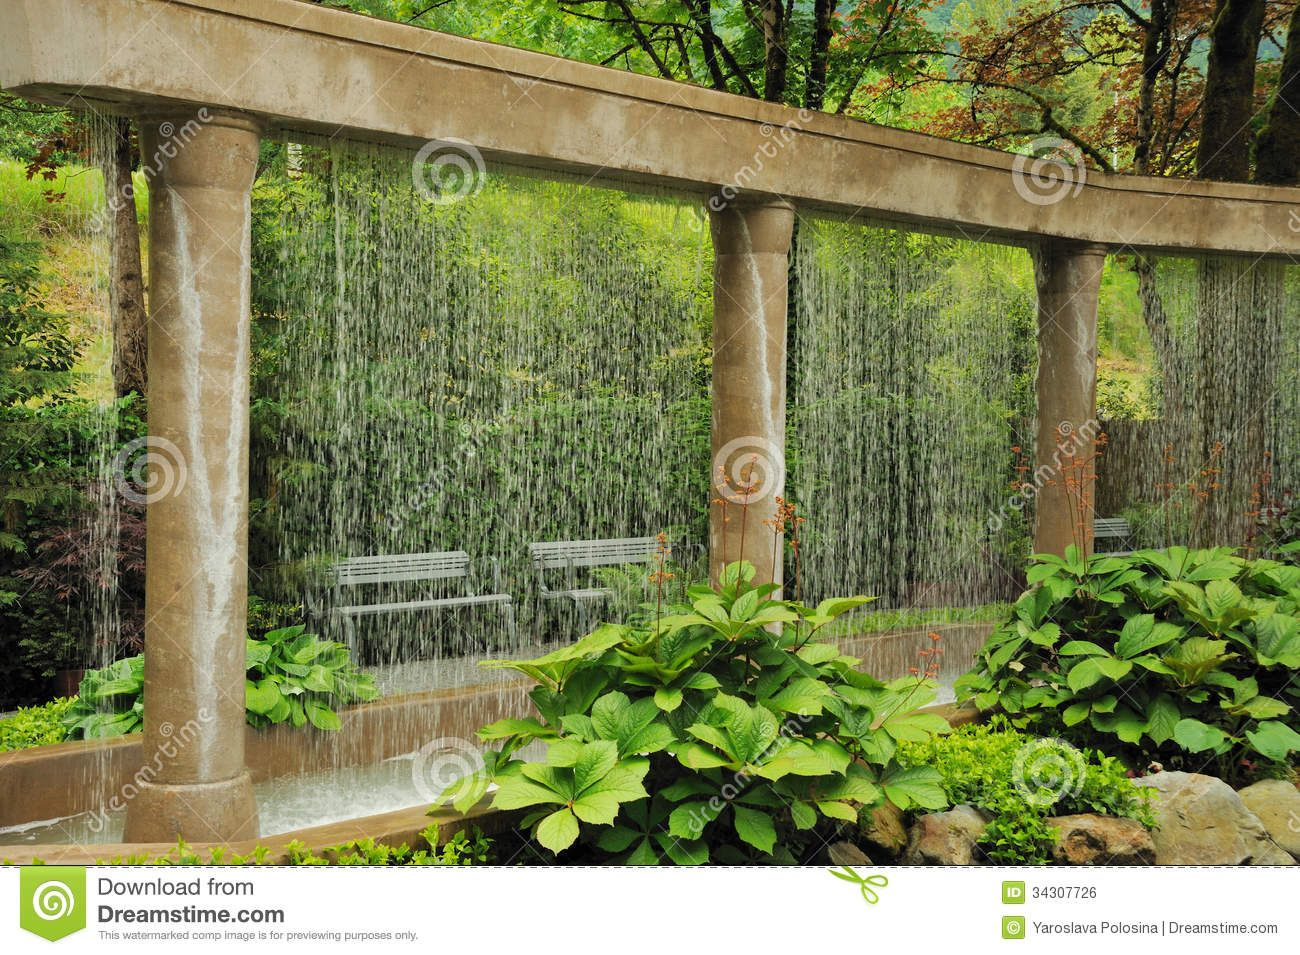 Merveilleux Decorative Water Wall In The Garden   Download From Over 28 Million High  Quality Stock Photos